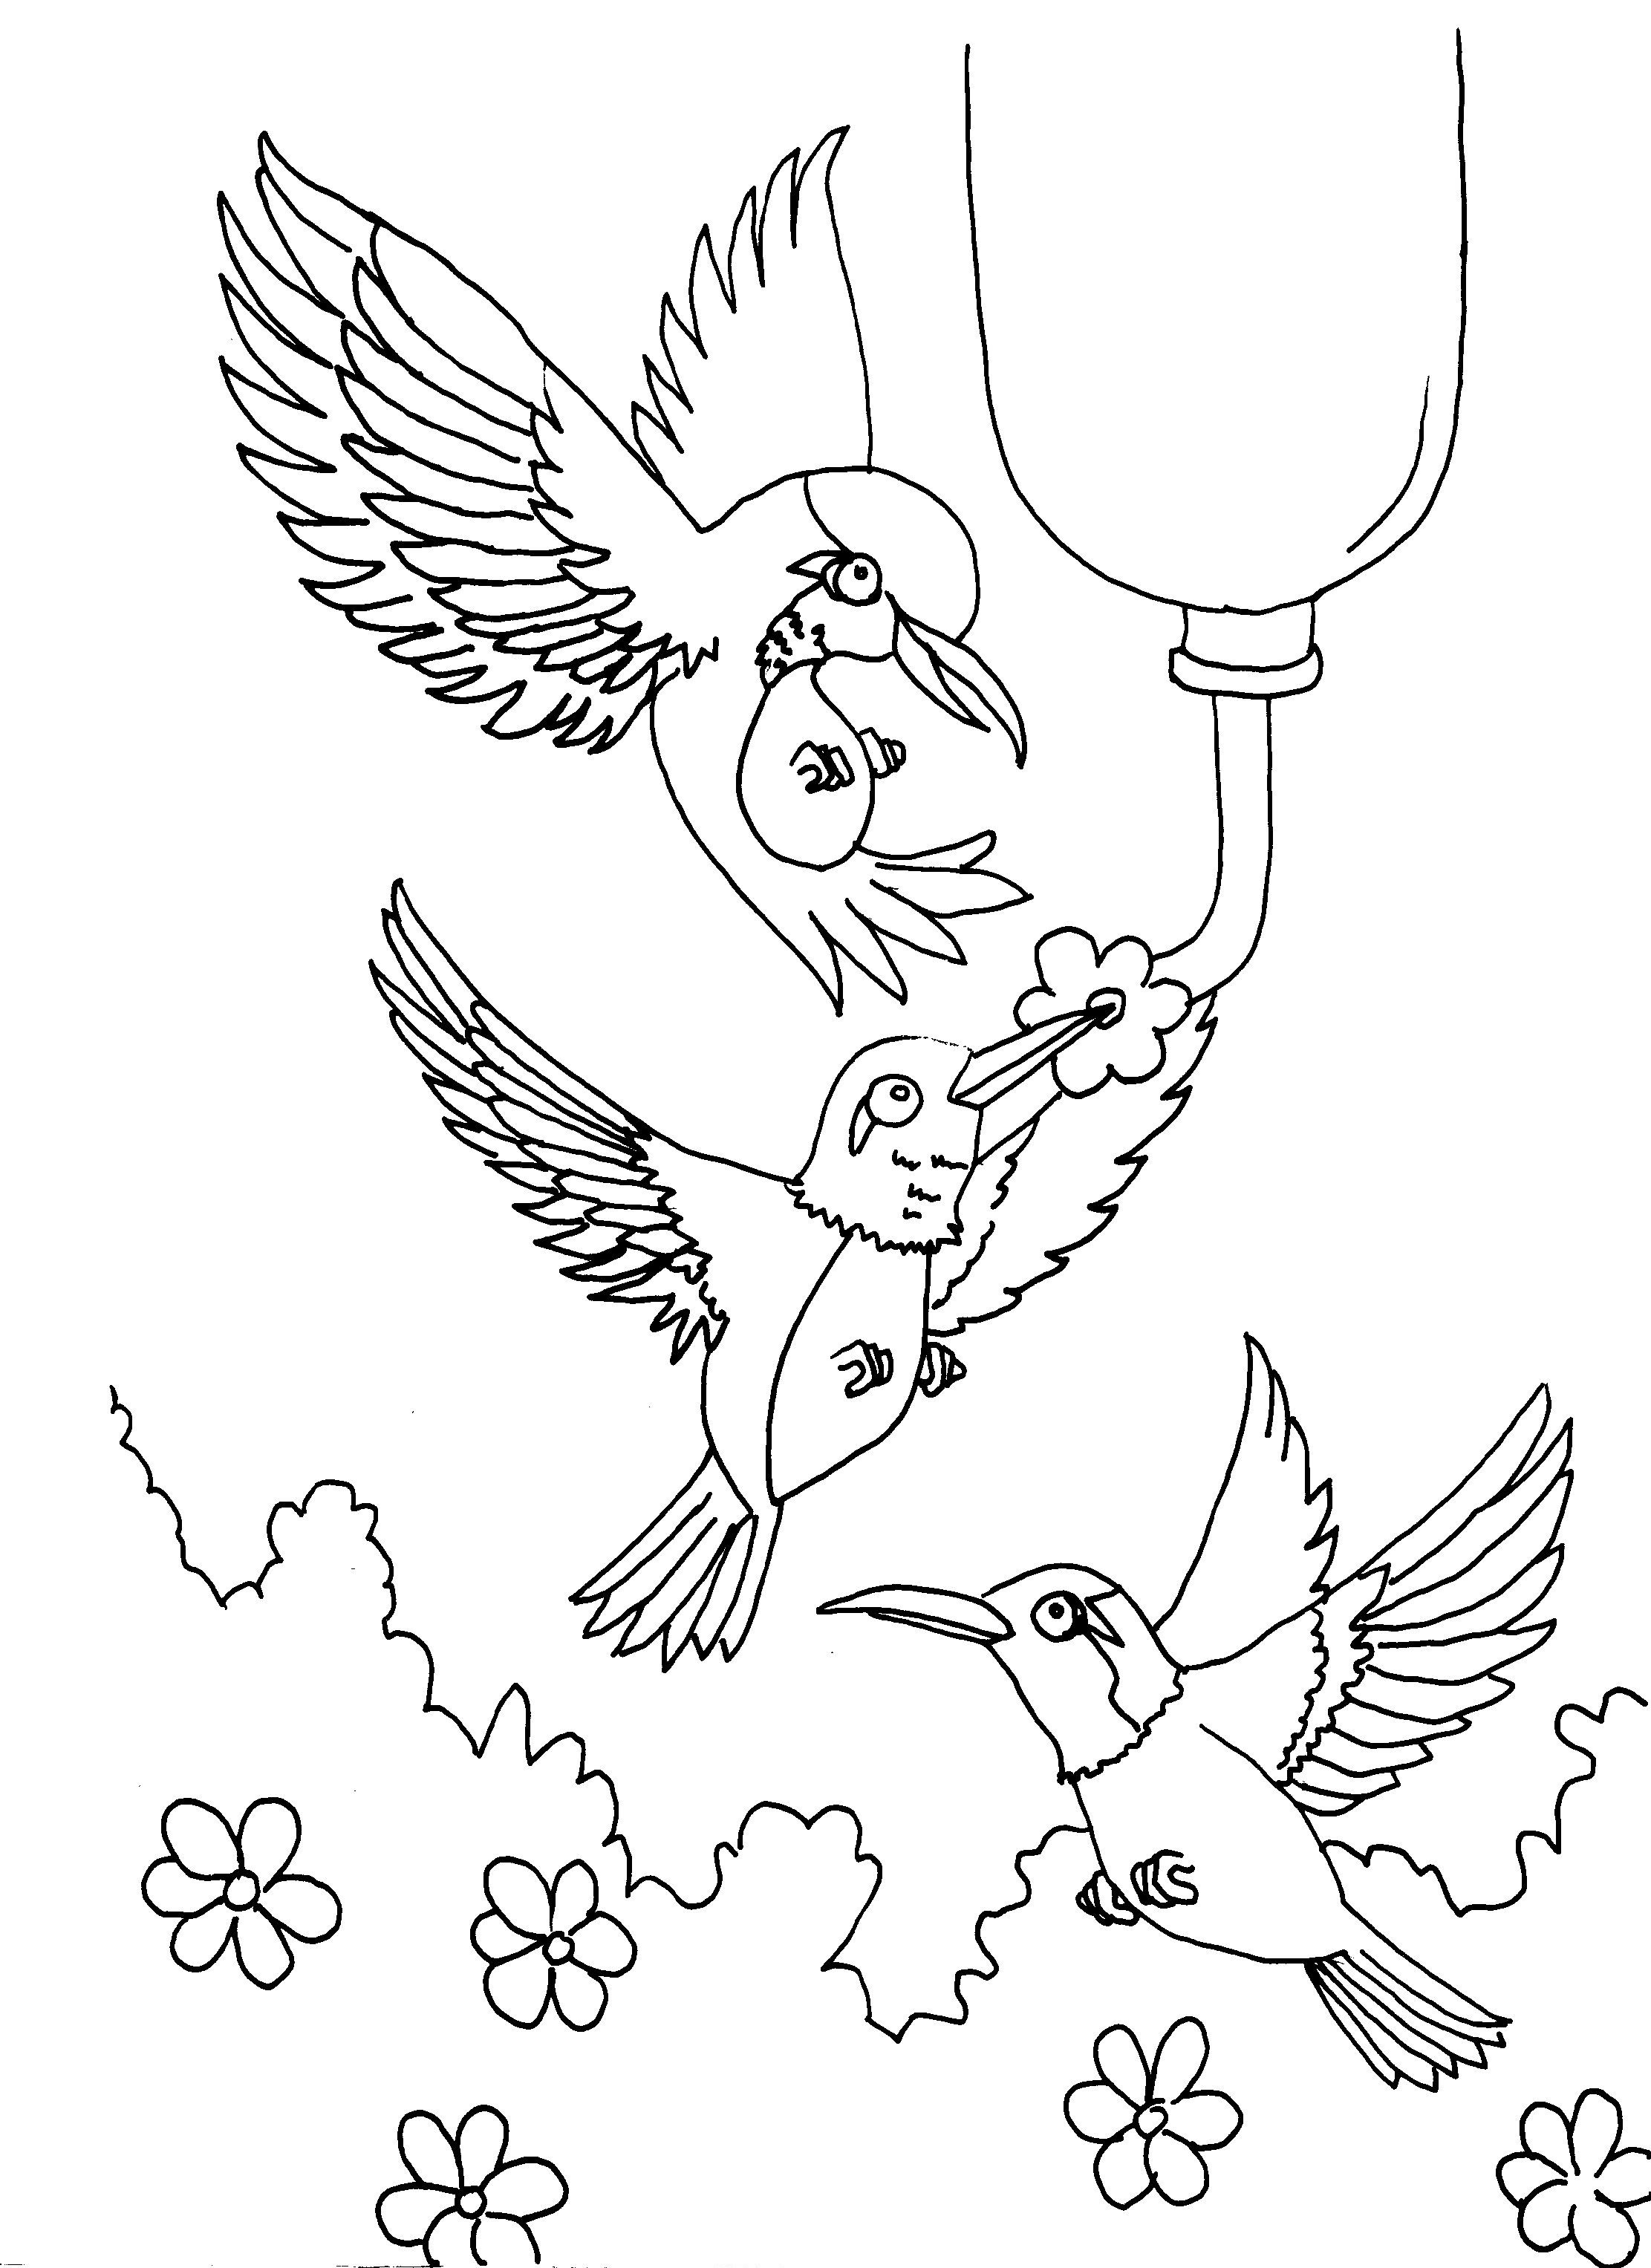 printable bird coloring pages free printable hummingbird coloring pages for kids printable coloring pages bird